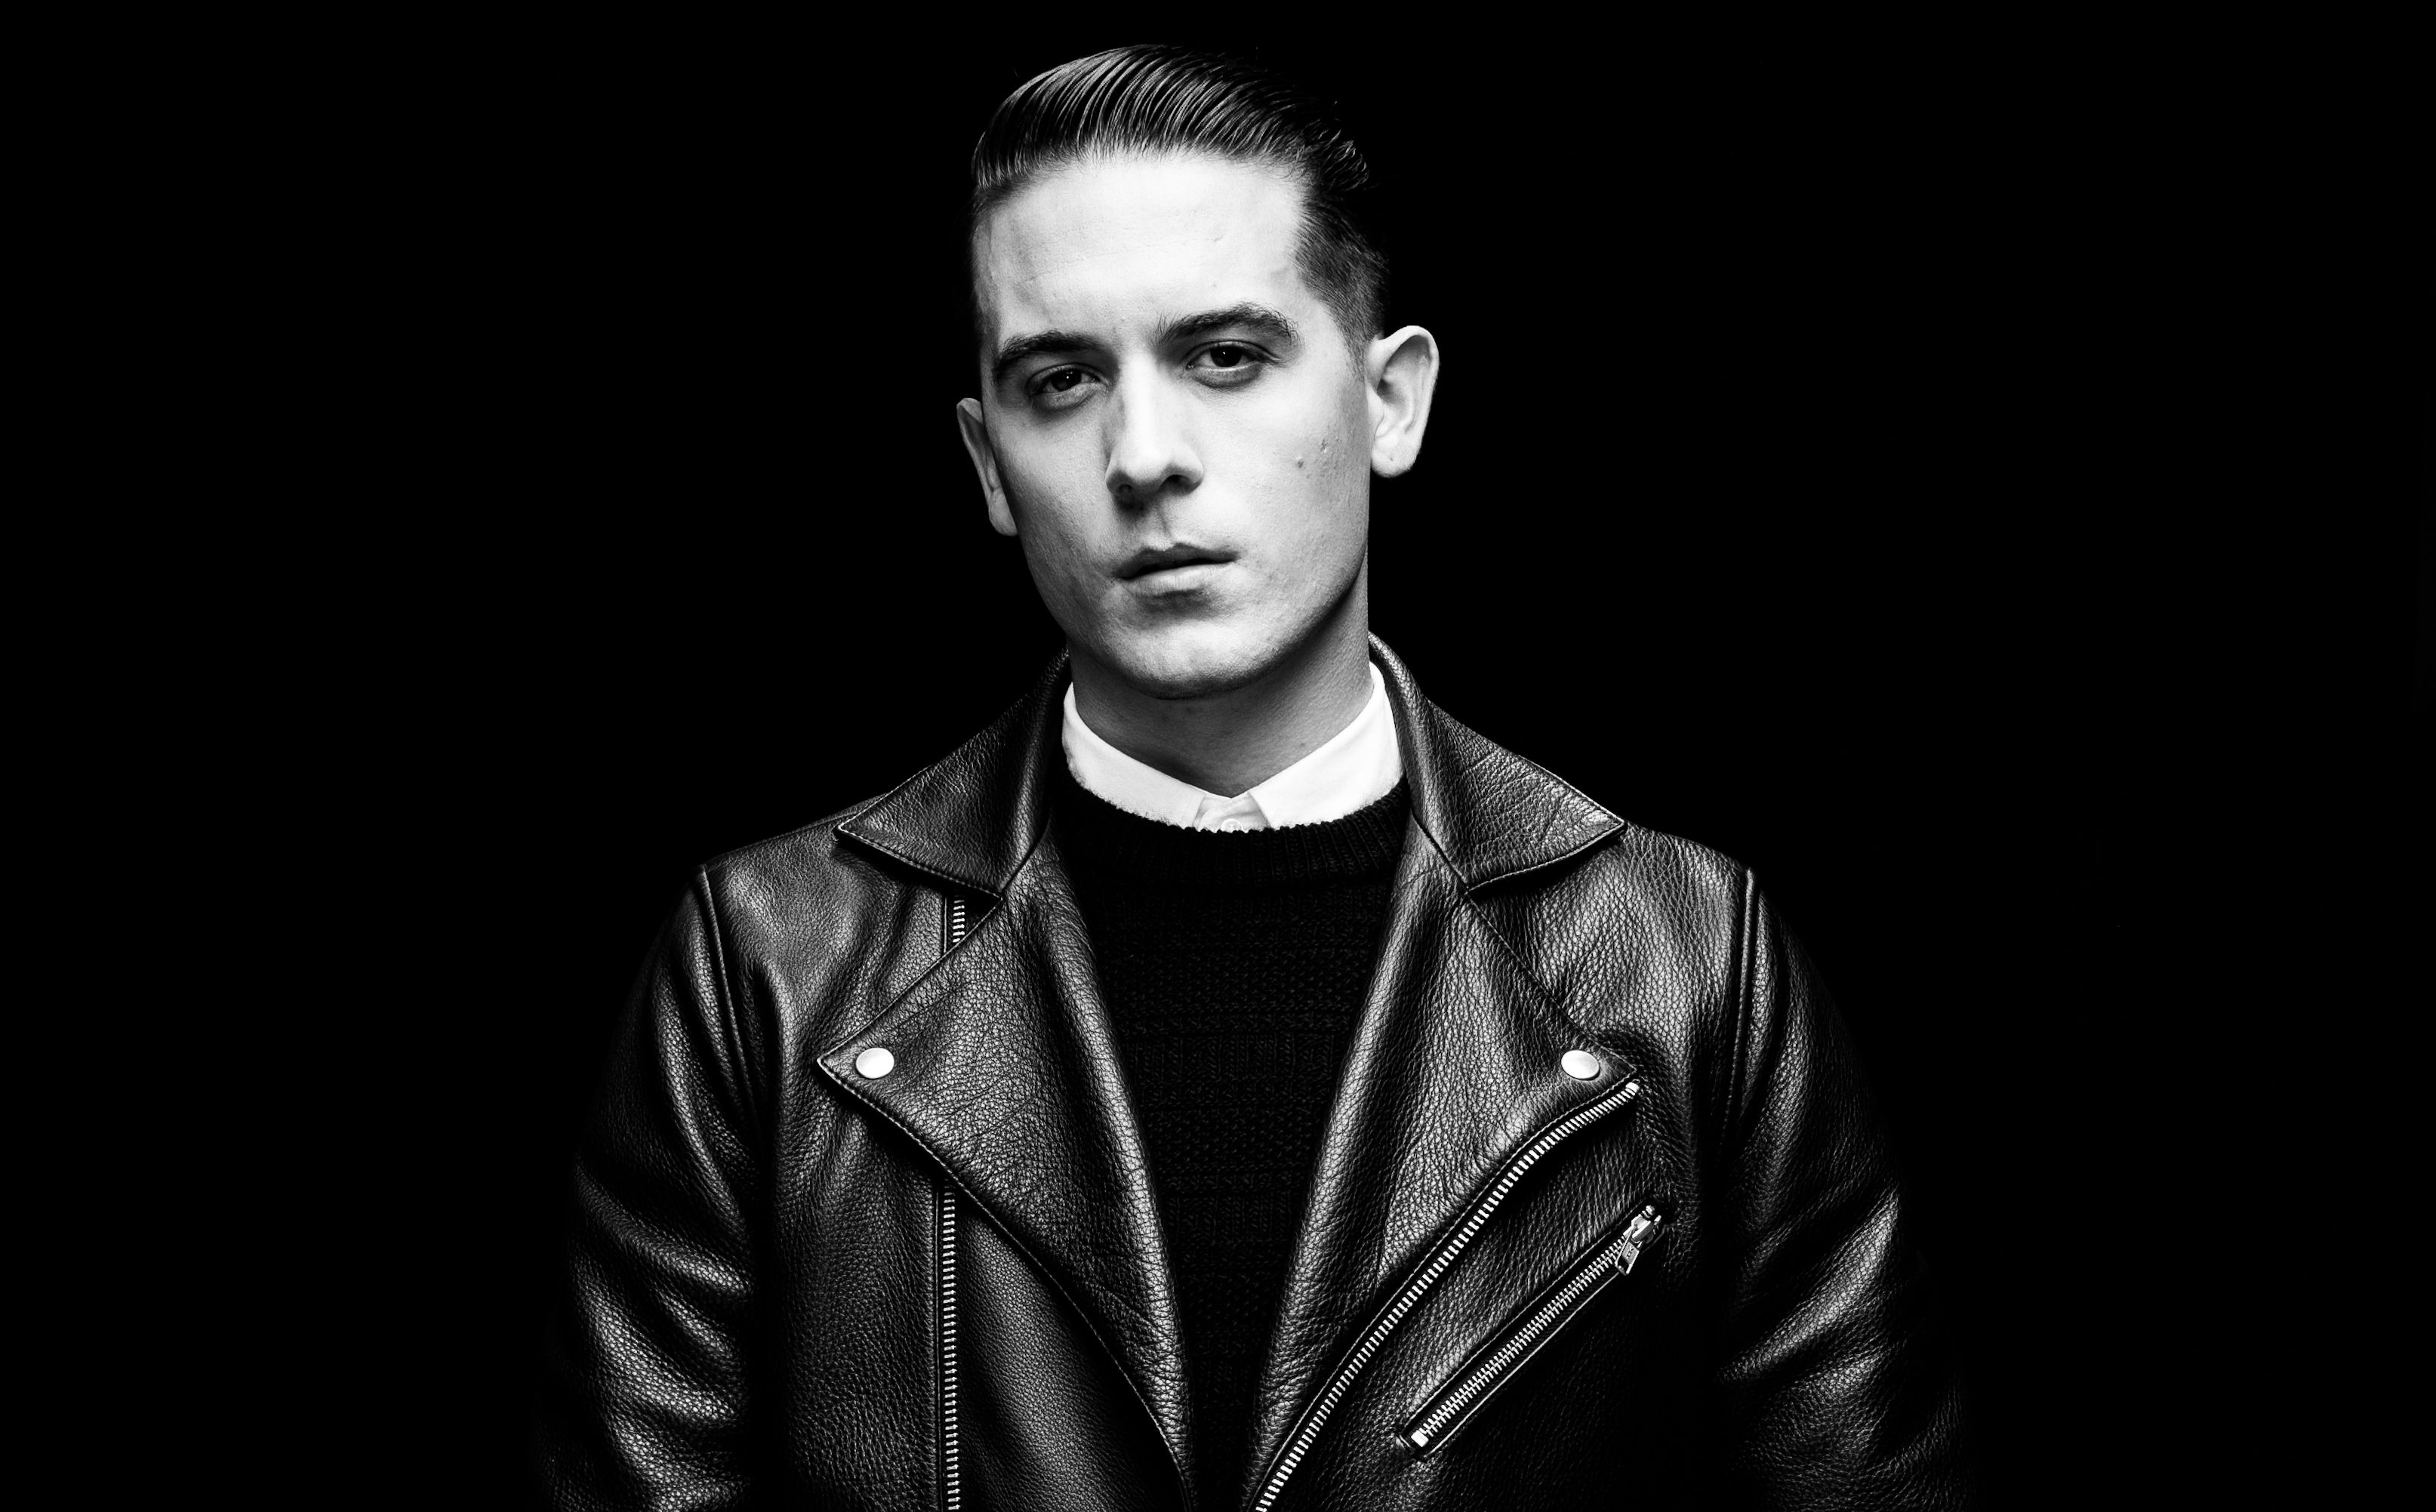 G Eazy Iphone Wallpapers Top Free G Eazy Iphone